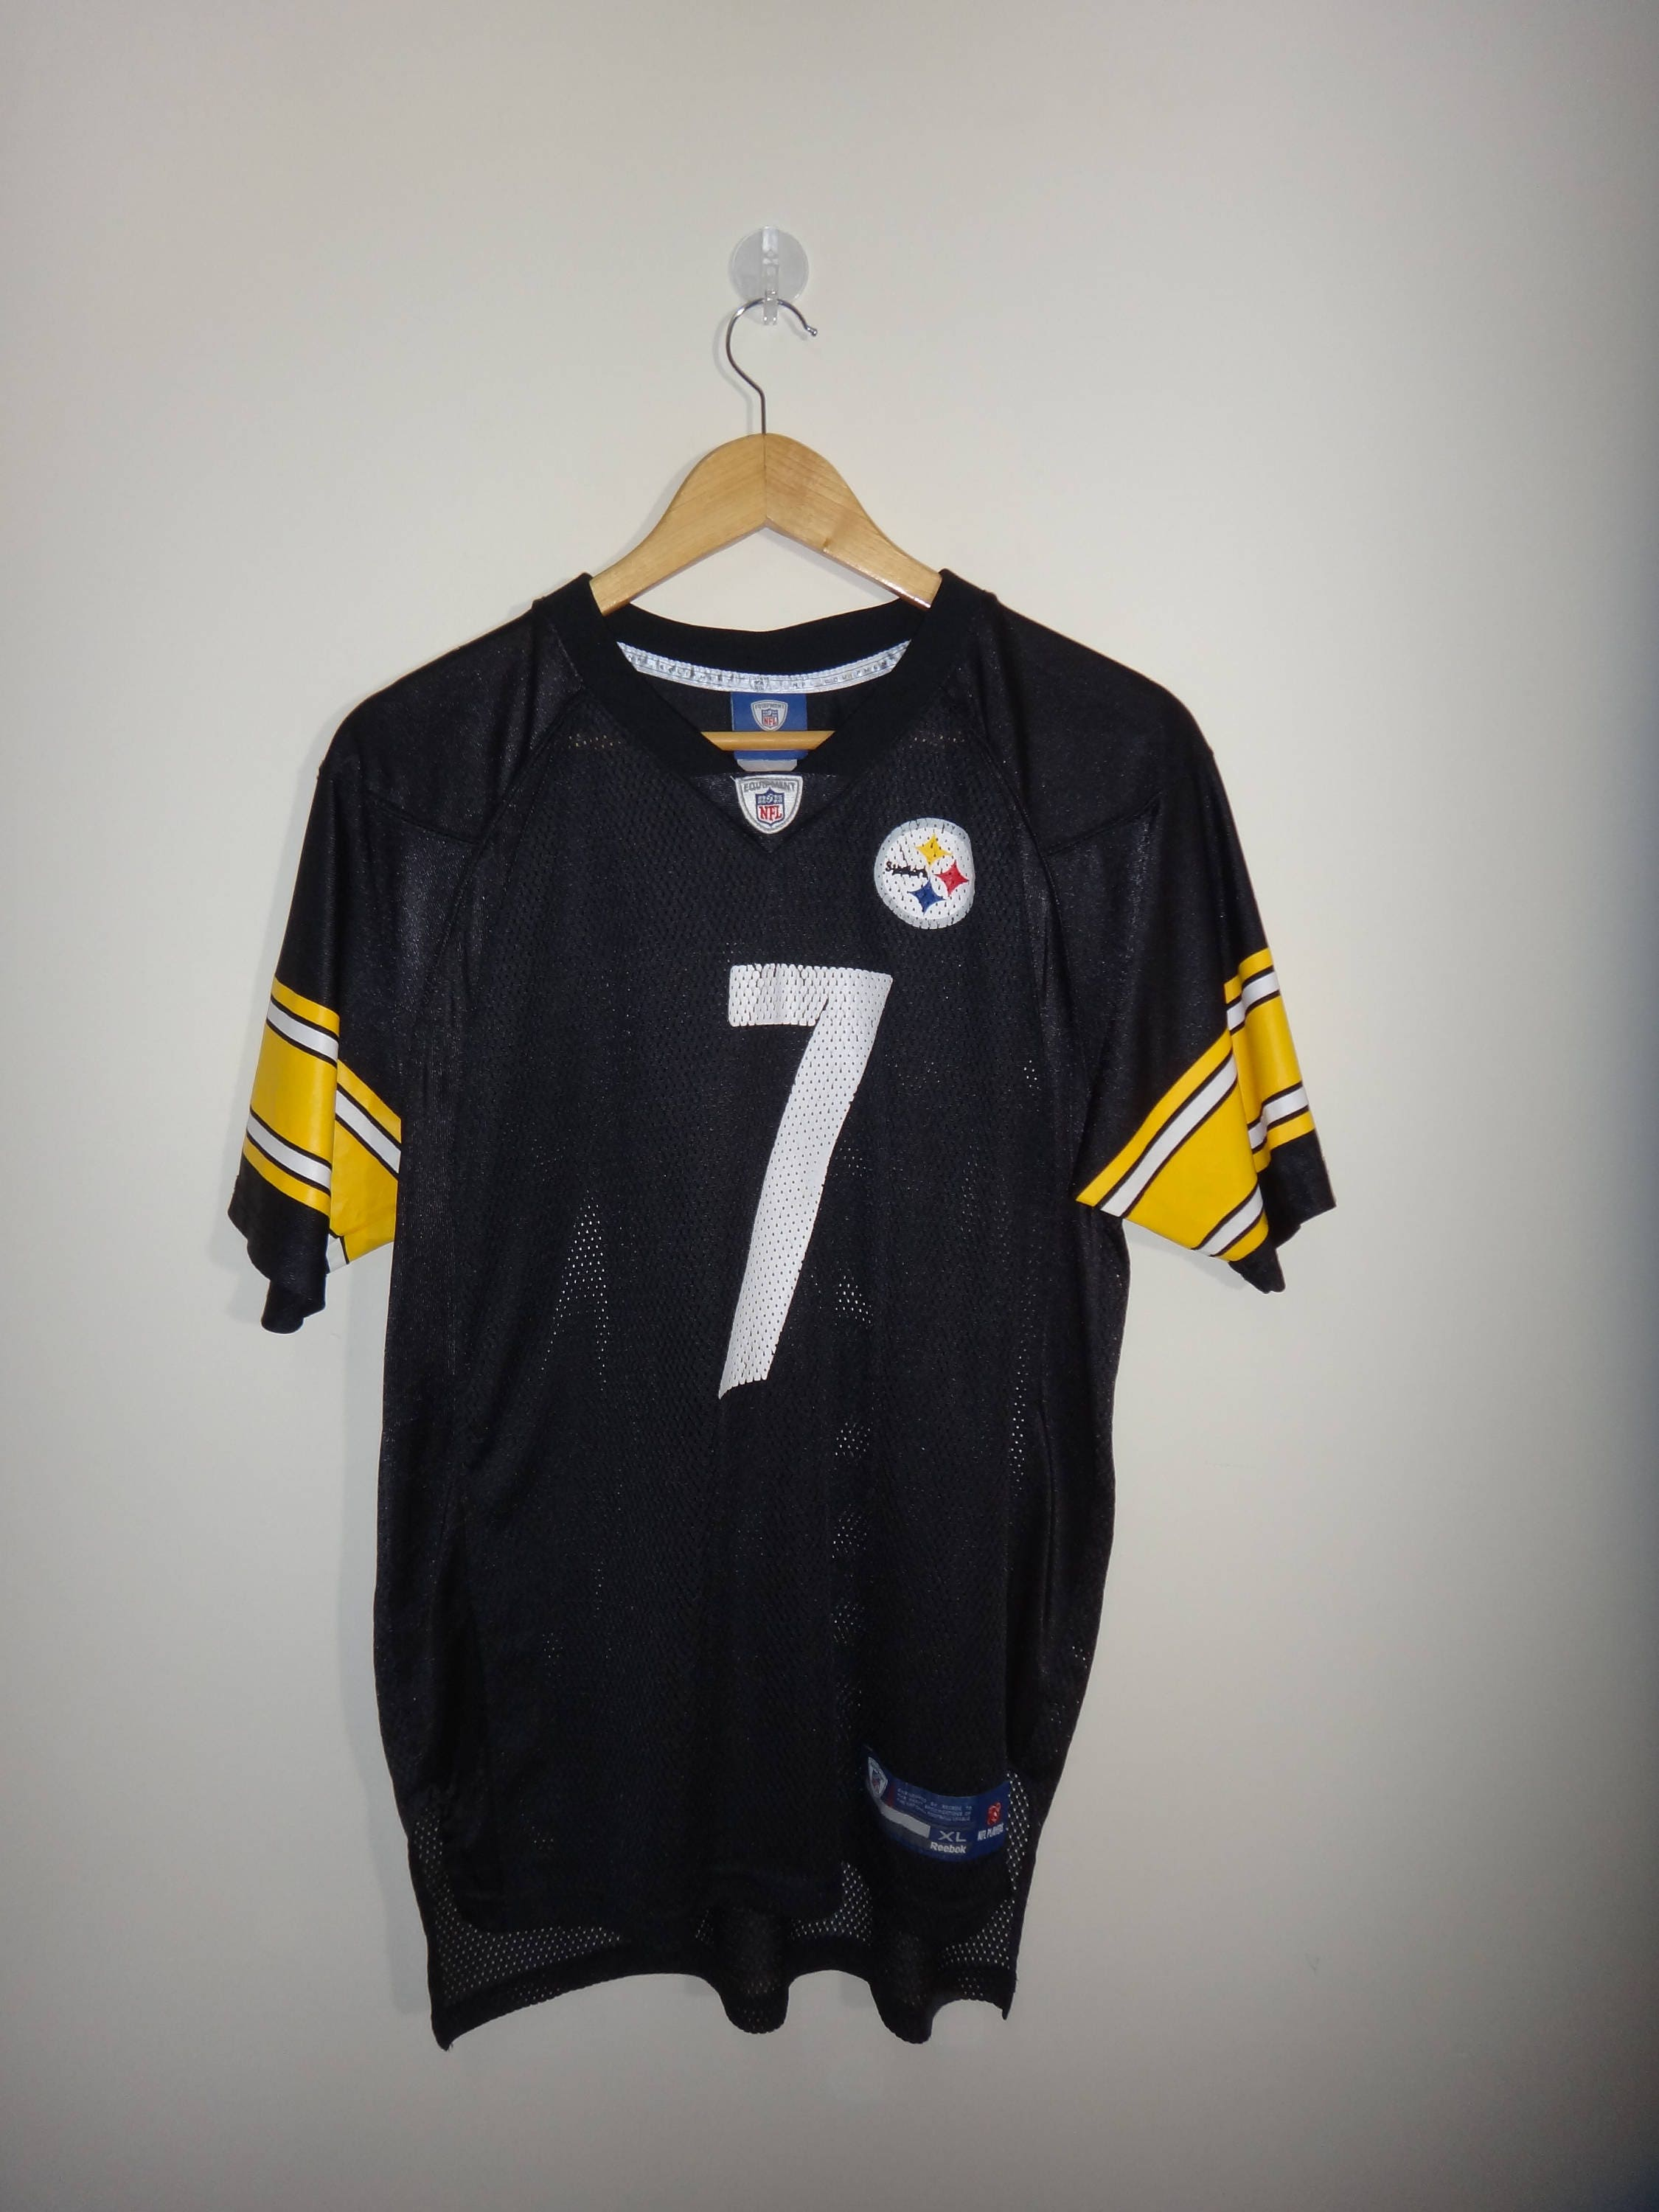 e13567261 ... White Authentic NFL Jersey Reebok Ben Roethlisberger Pittsburgh  Steelers NFL American ...